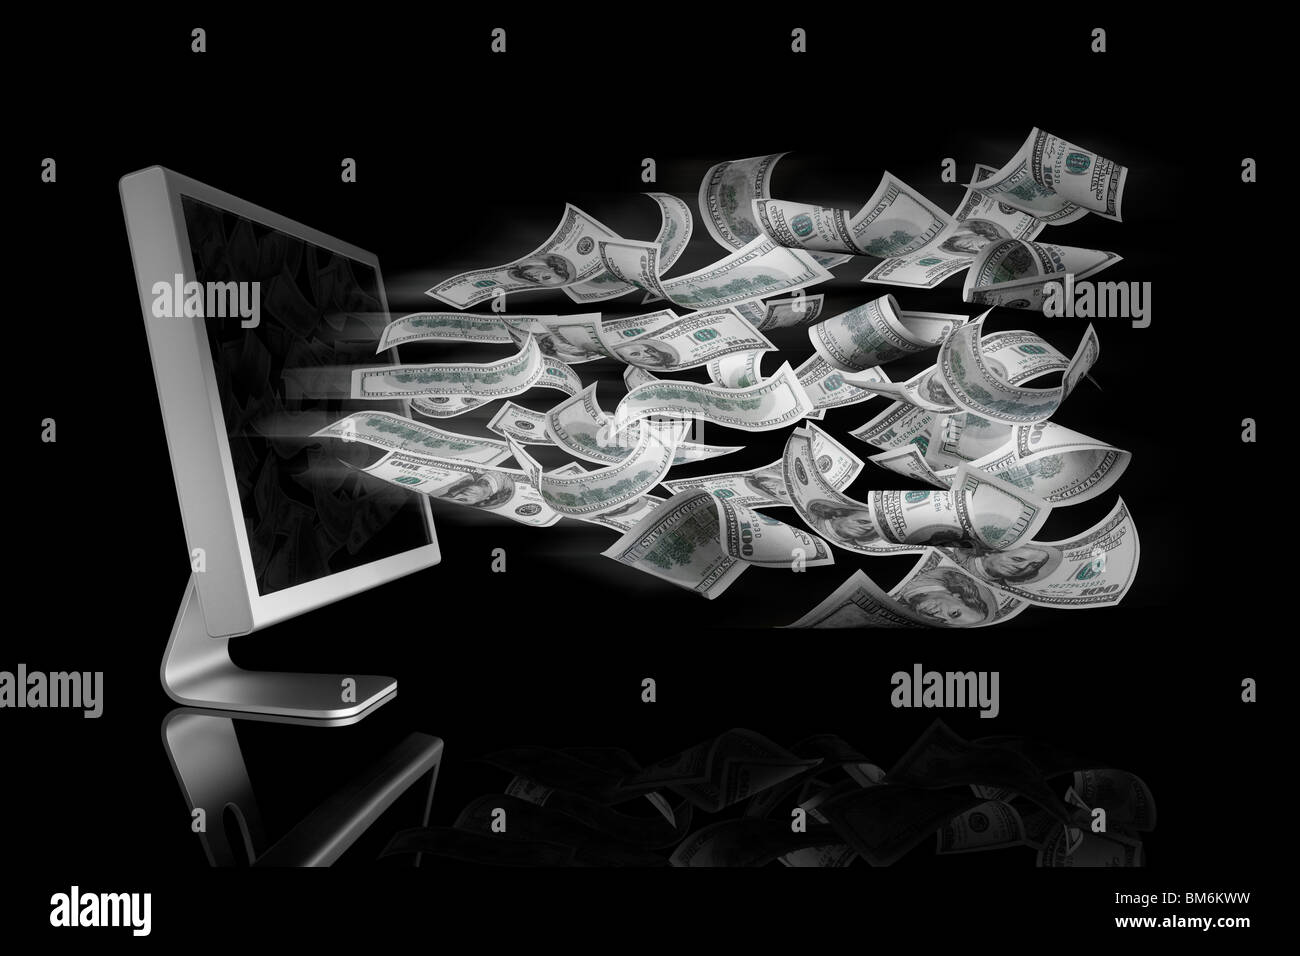 100 Dollar bills coming out a computer screen - Stock Image